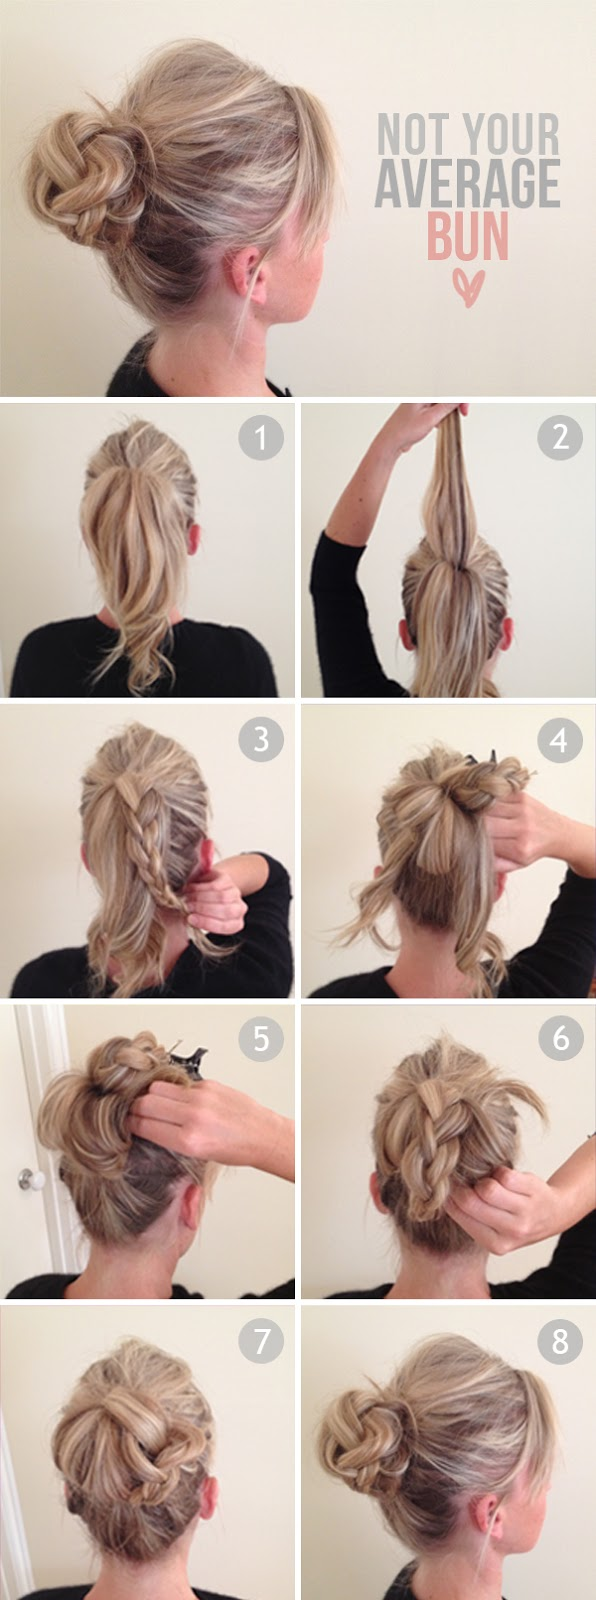 19 Great Tutorials for Perfect Hairstyles (10)